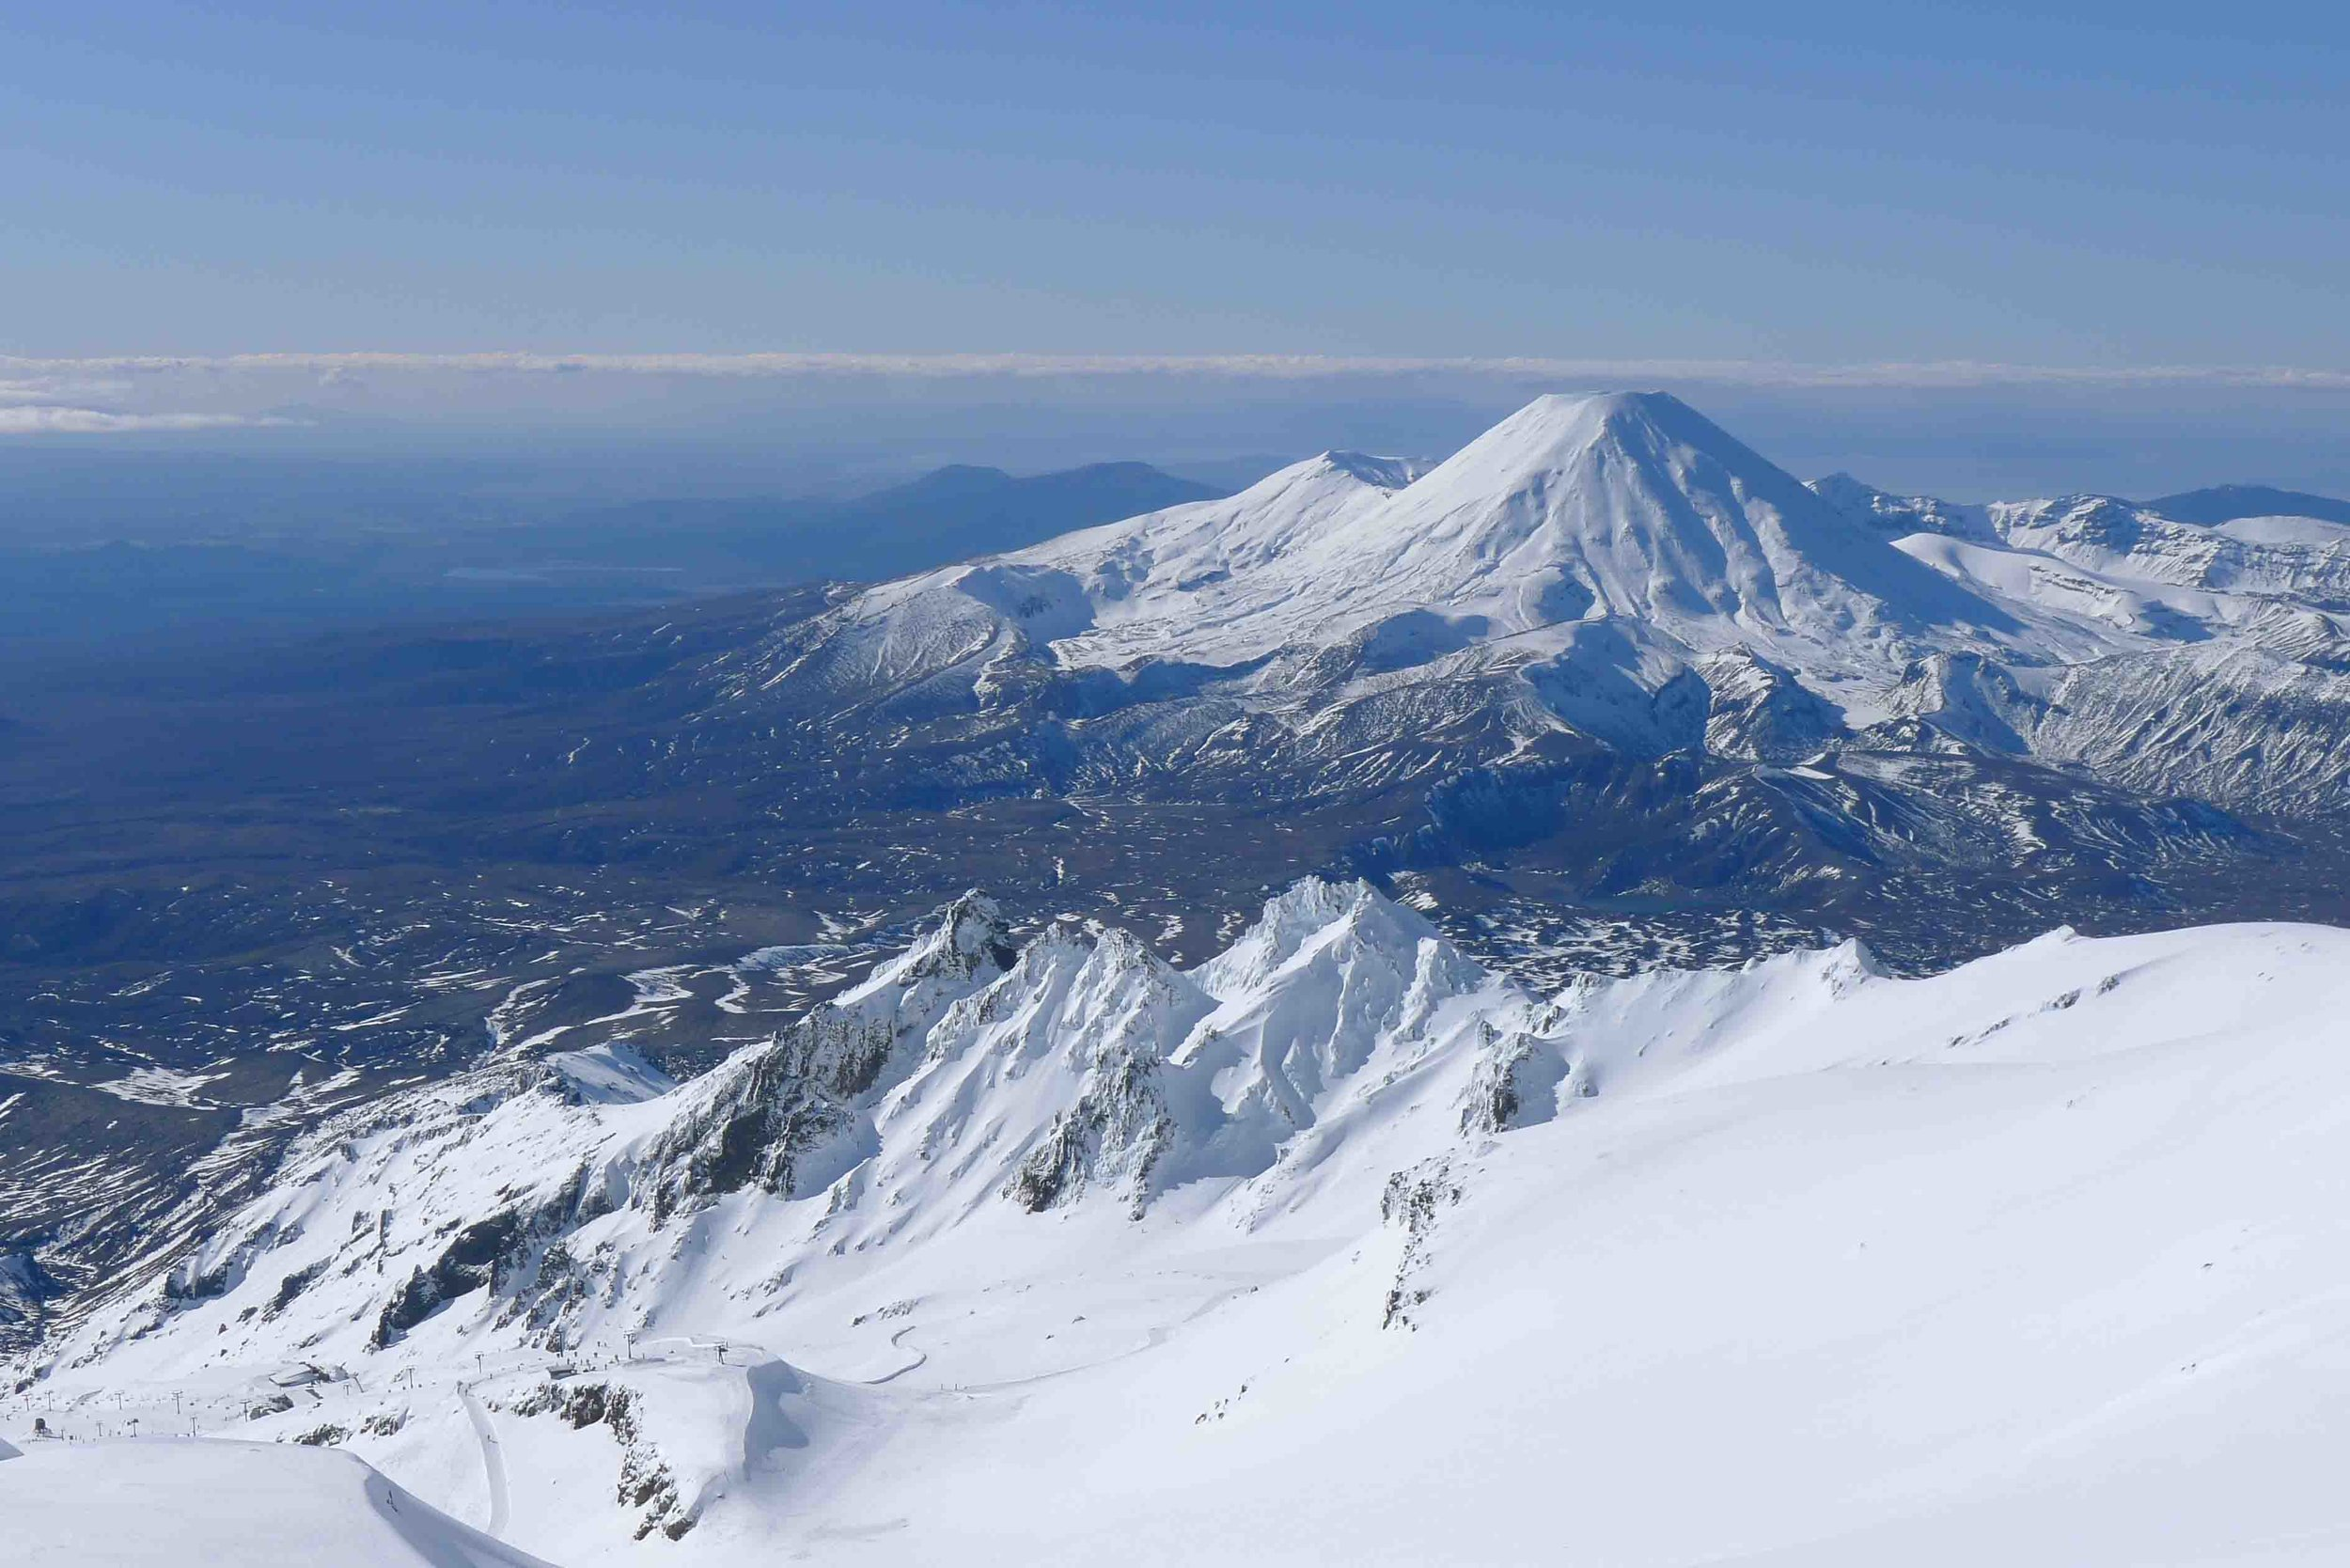 The world at our feet. Mounts Tongariro and Ngauruhoe from Mount Ruapehu, in August